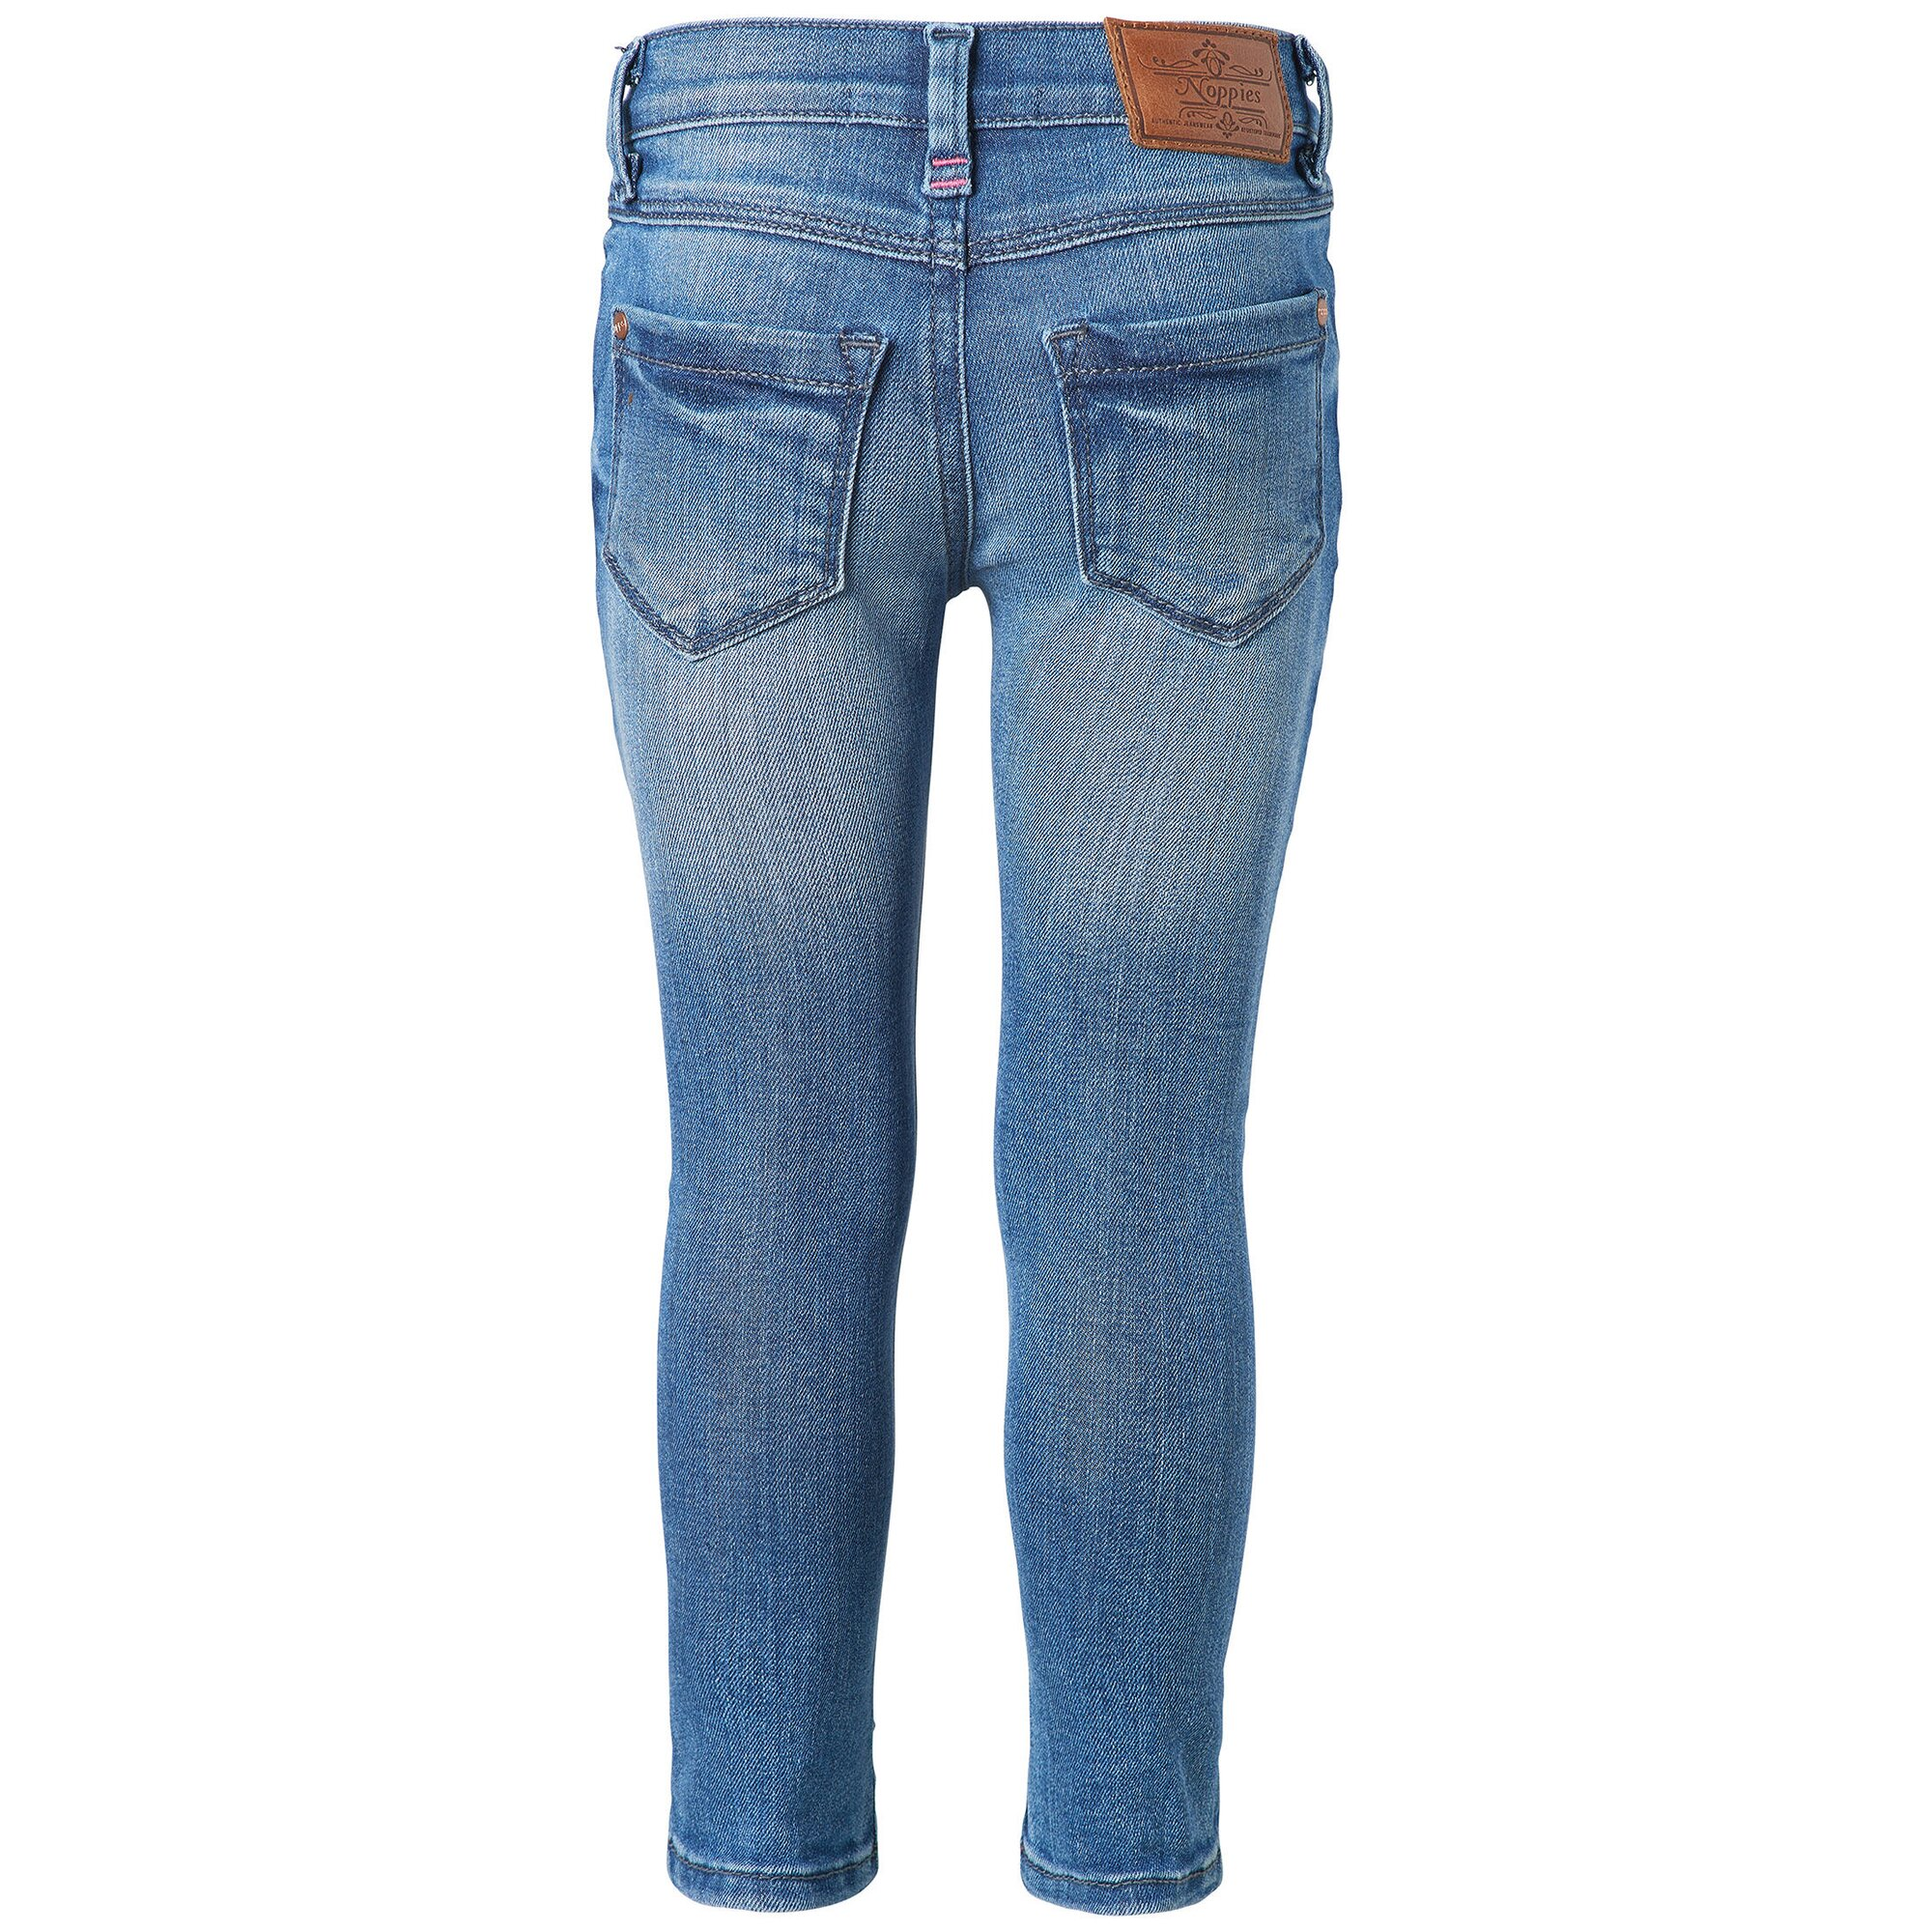 noppies-jeans-nizan